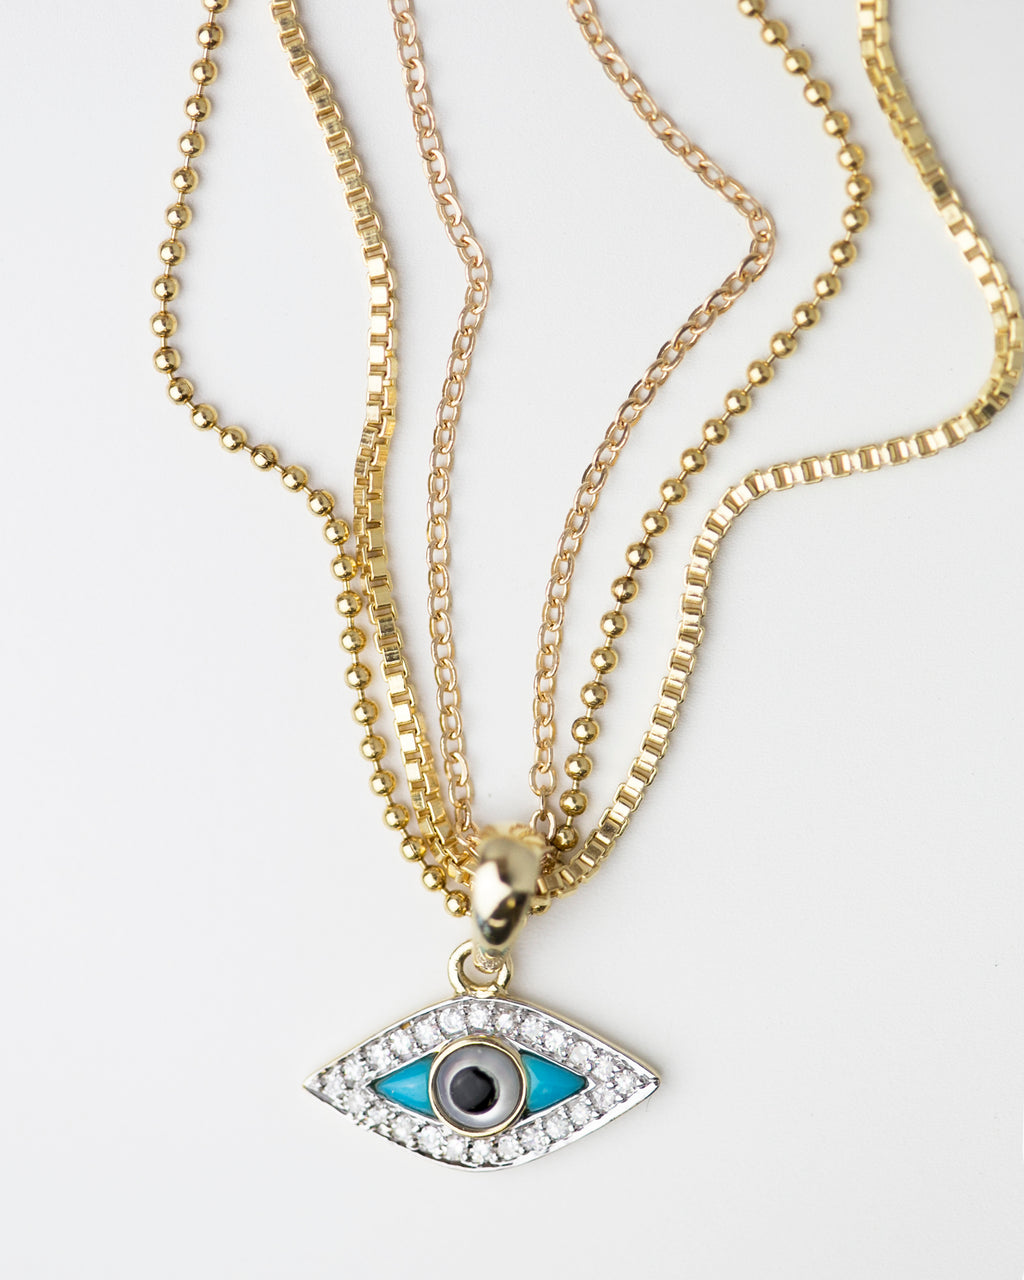 Diamond Evileye Necklace